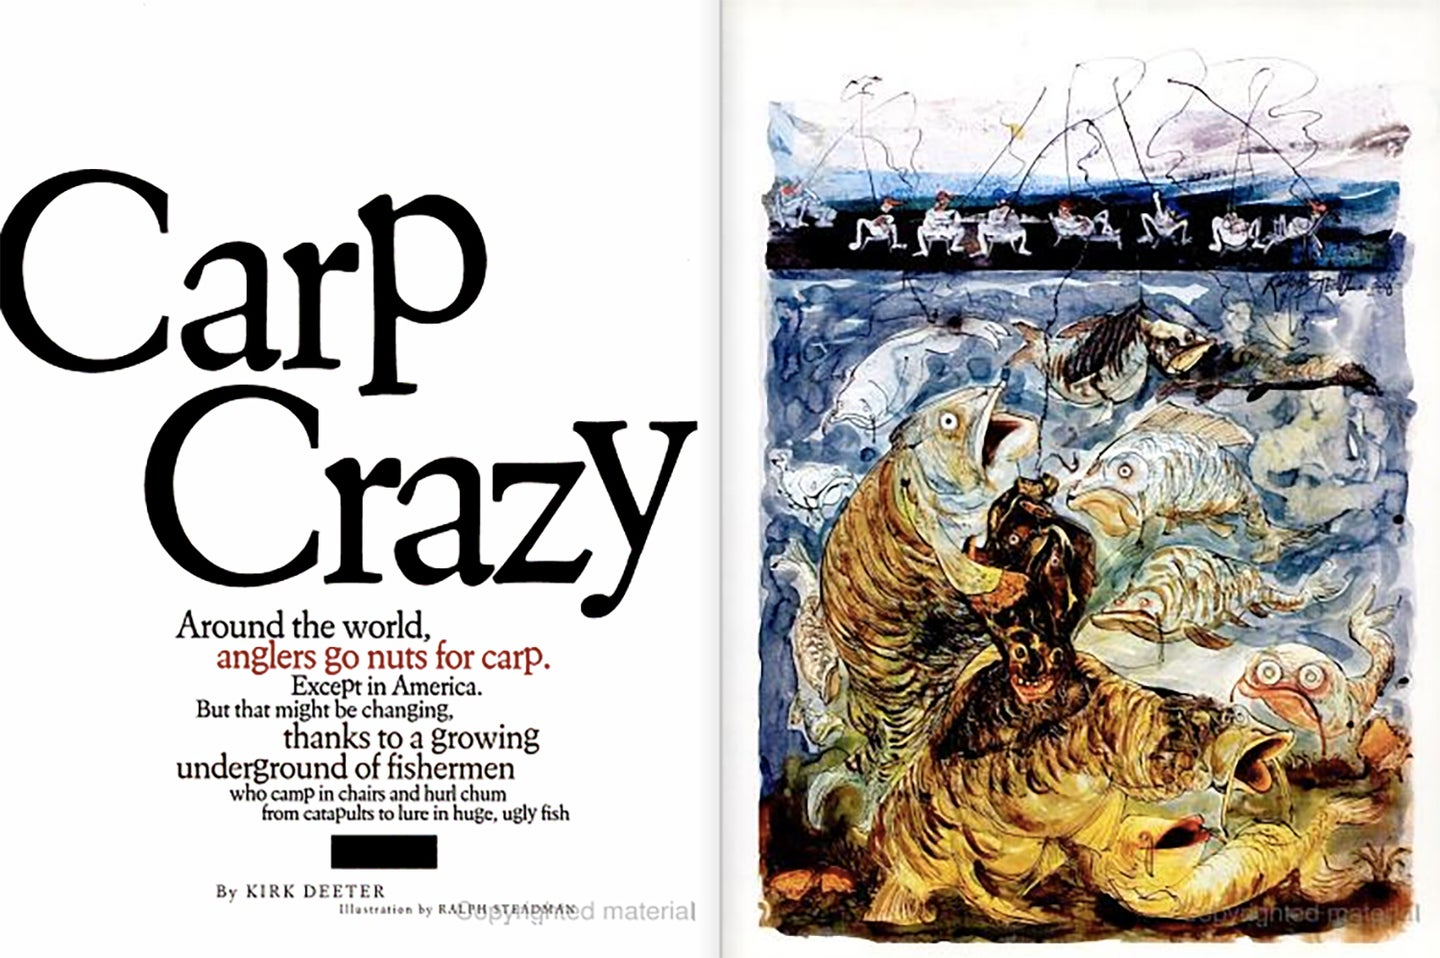 Clipping of an article from Field & Stream magazine showing an illustration of carp fishing.